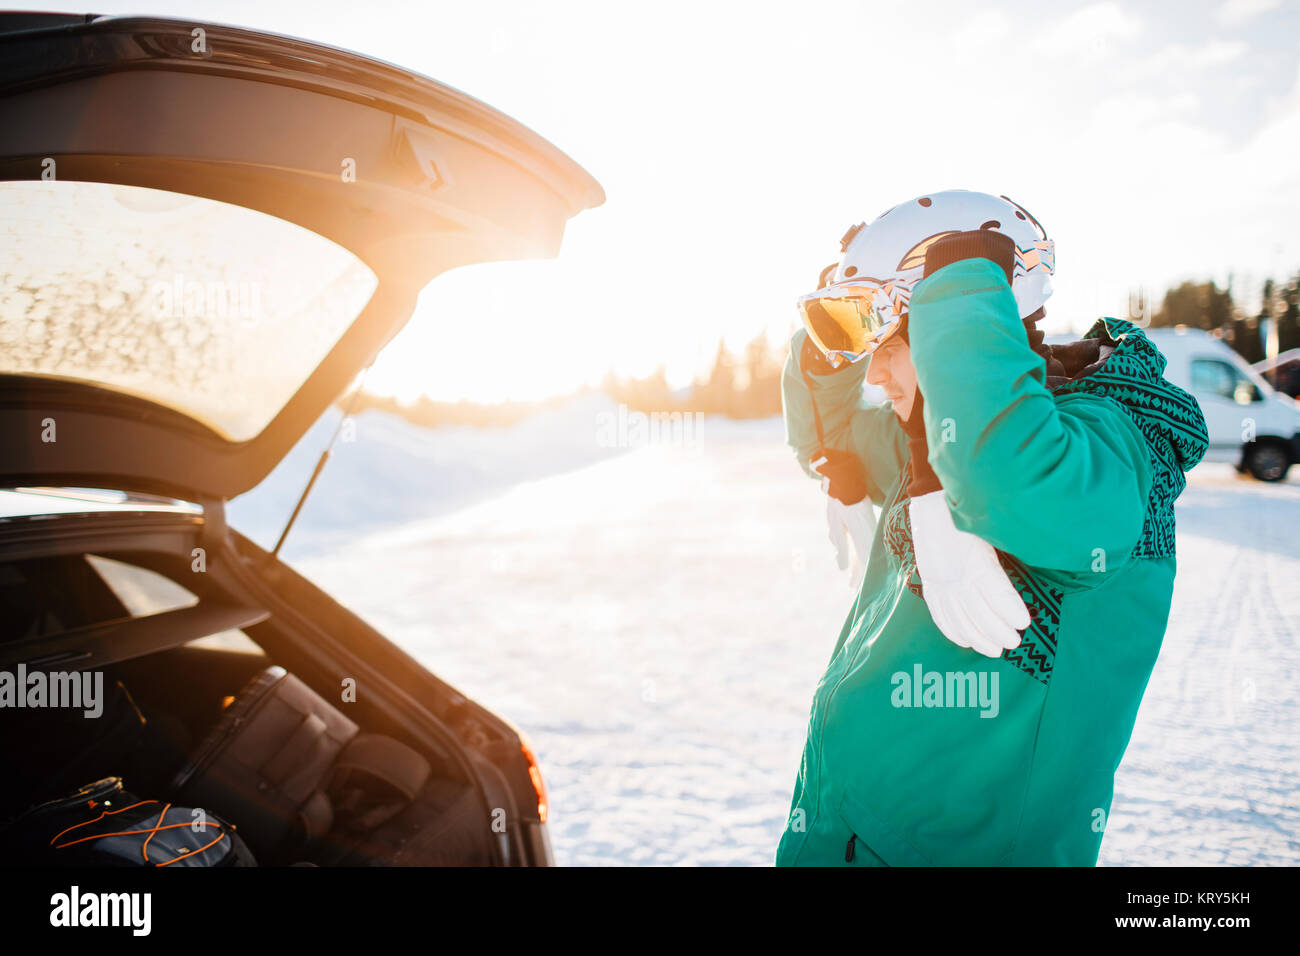 Man by a car on snow in Osterdalen, Norway - Stock Image